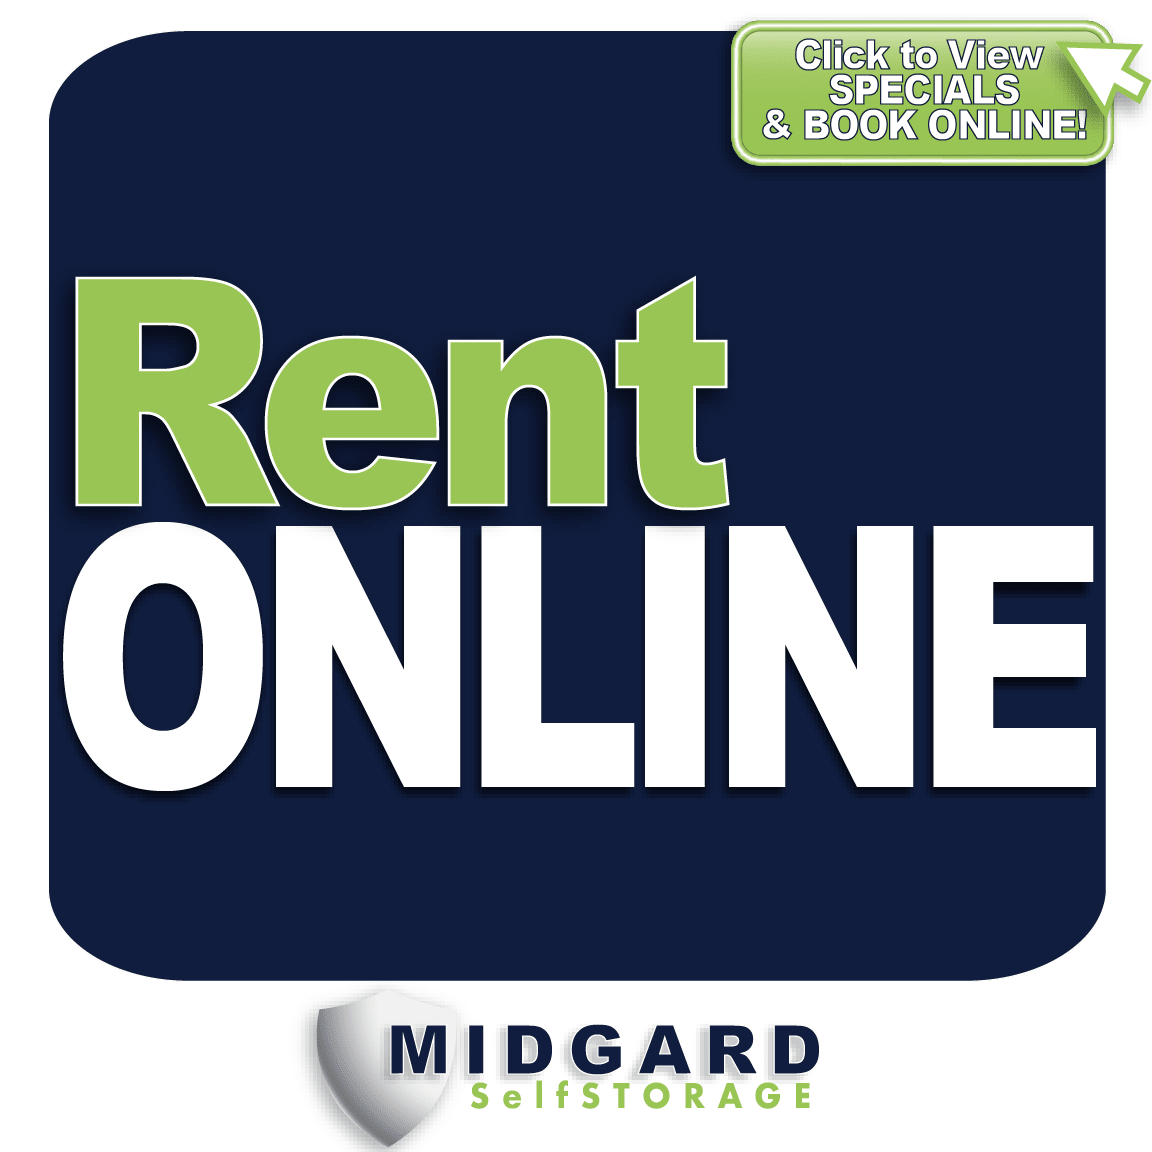 1st month free Special at Midgard Self Storage in Murfreesboro, Tennessee